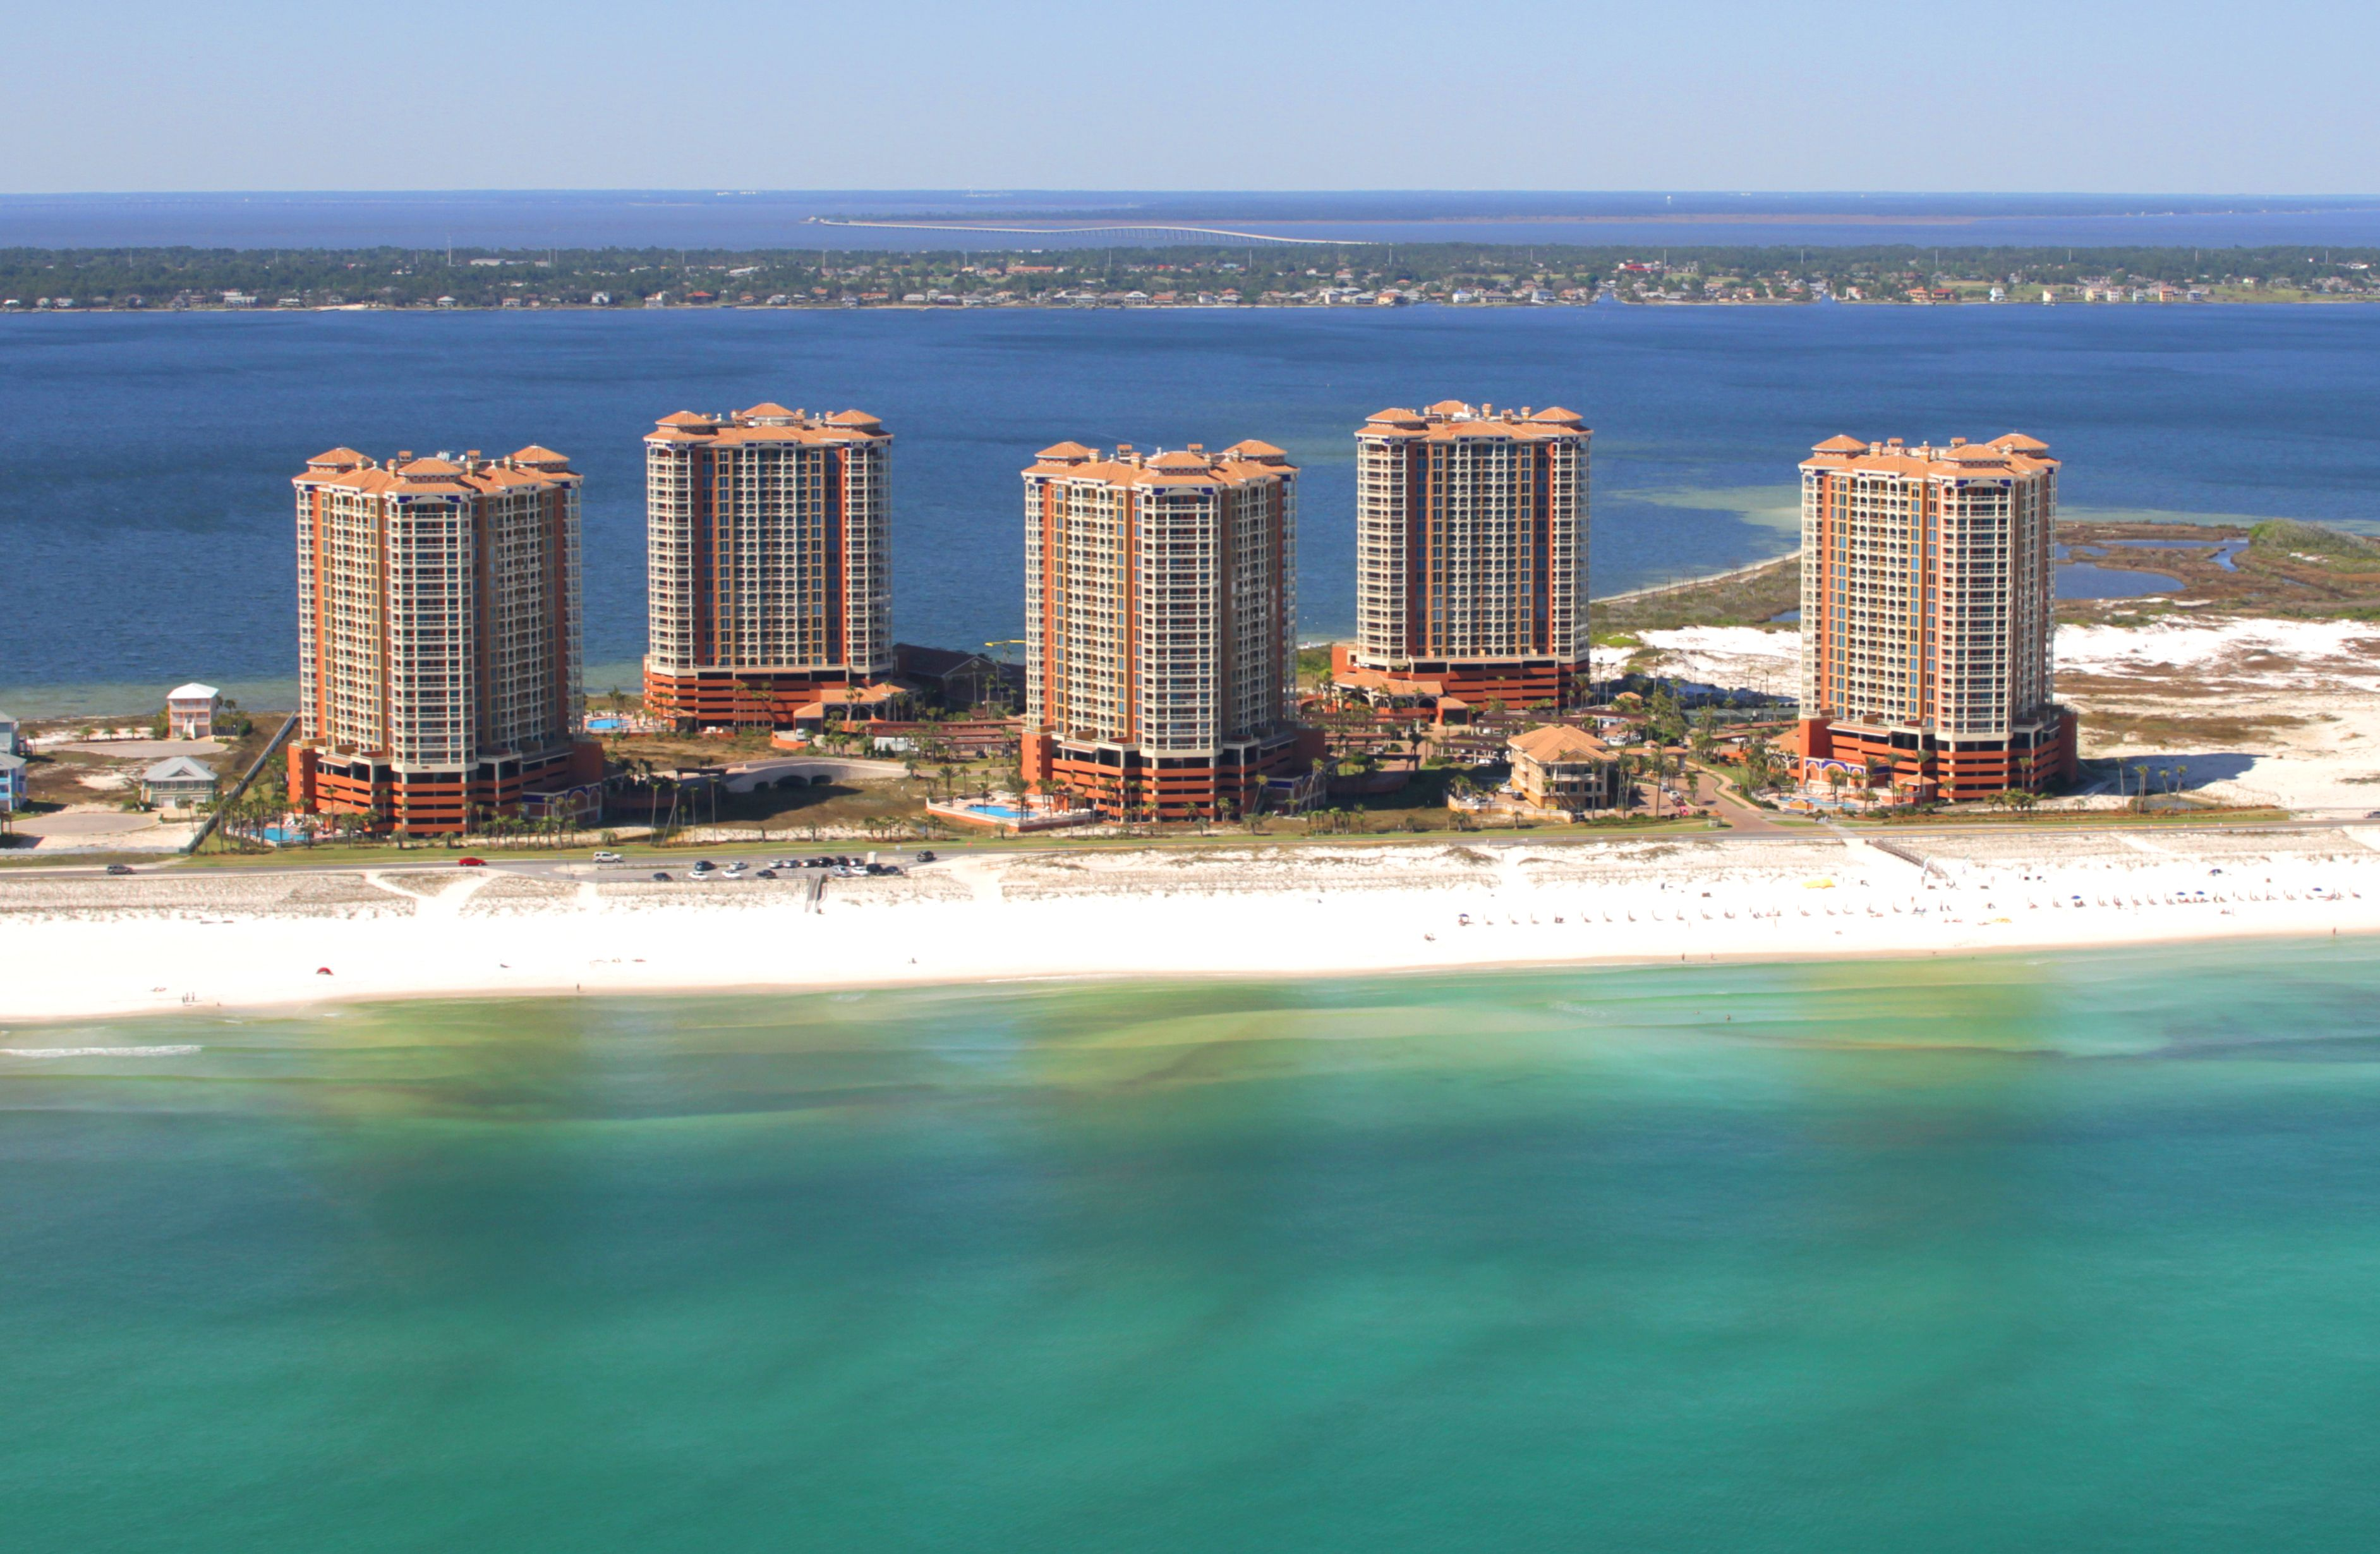 Pensacolabeach Florida Condos Beautiful Remax Onthecoast Realestate Weekend Fun